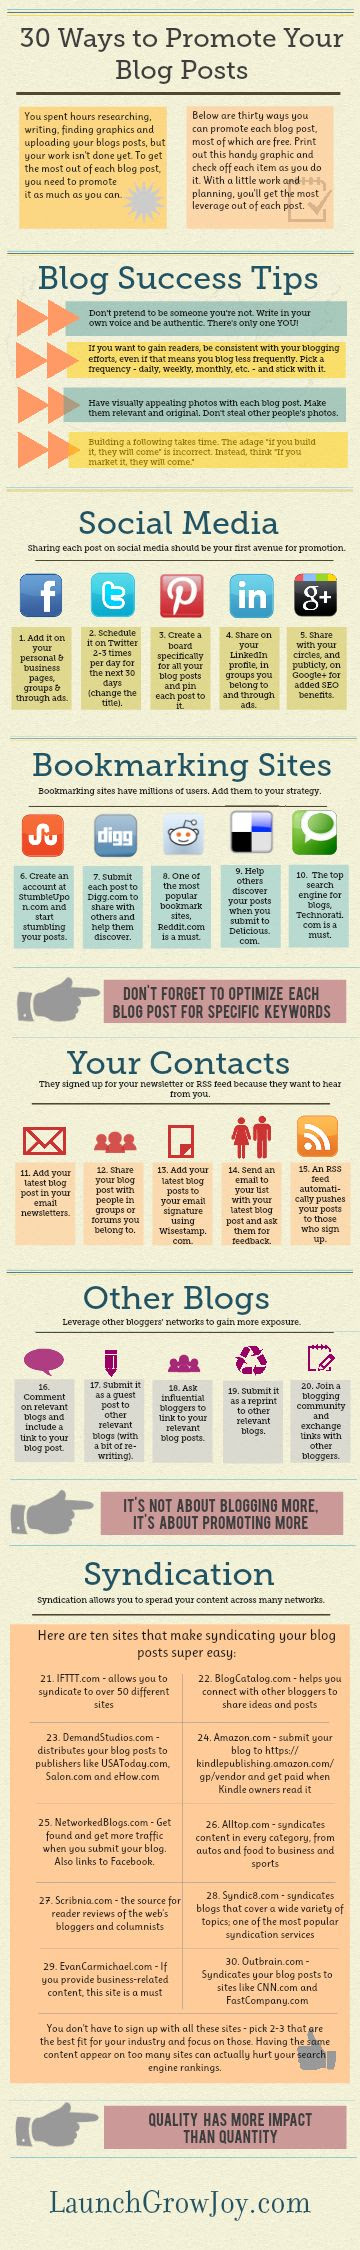 30 ways to promote your blog p